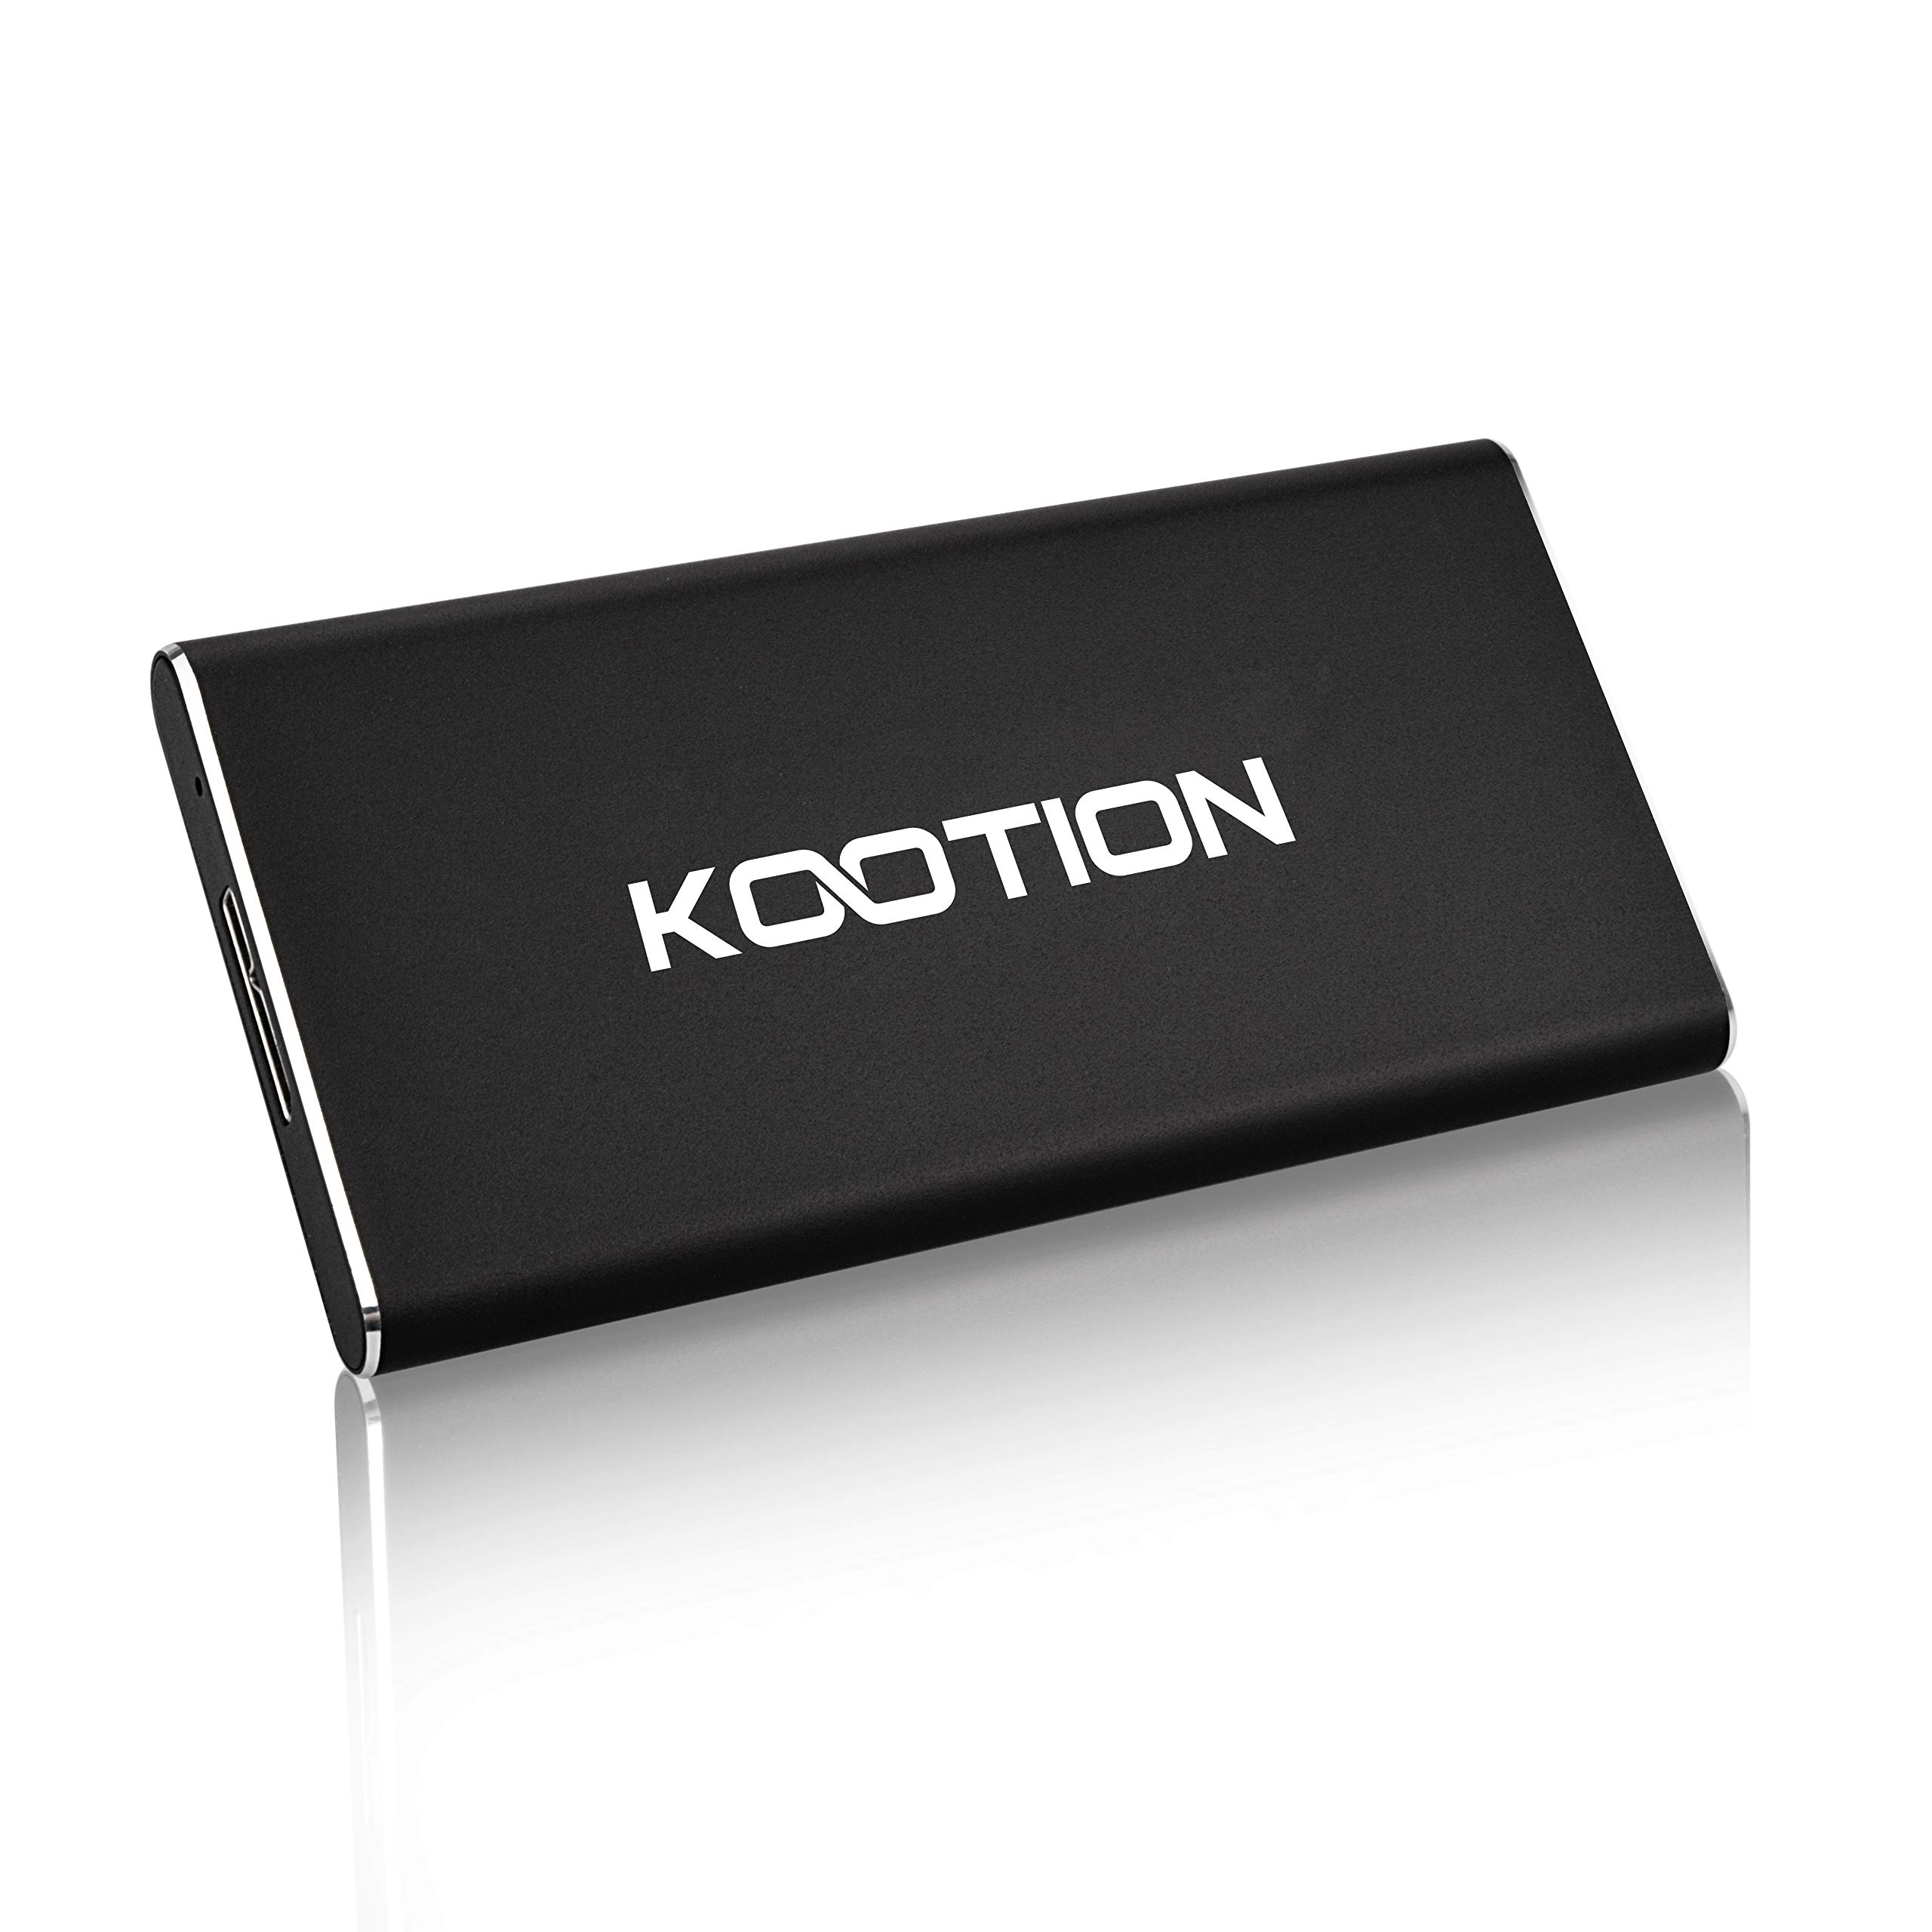 KOOTION X1 128GB External SSD USB 3.0 Portable Solid State Drive, Black